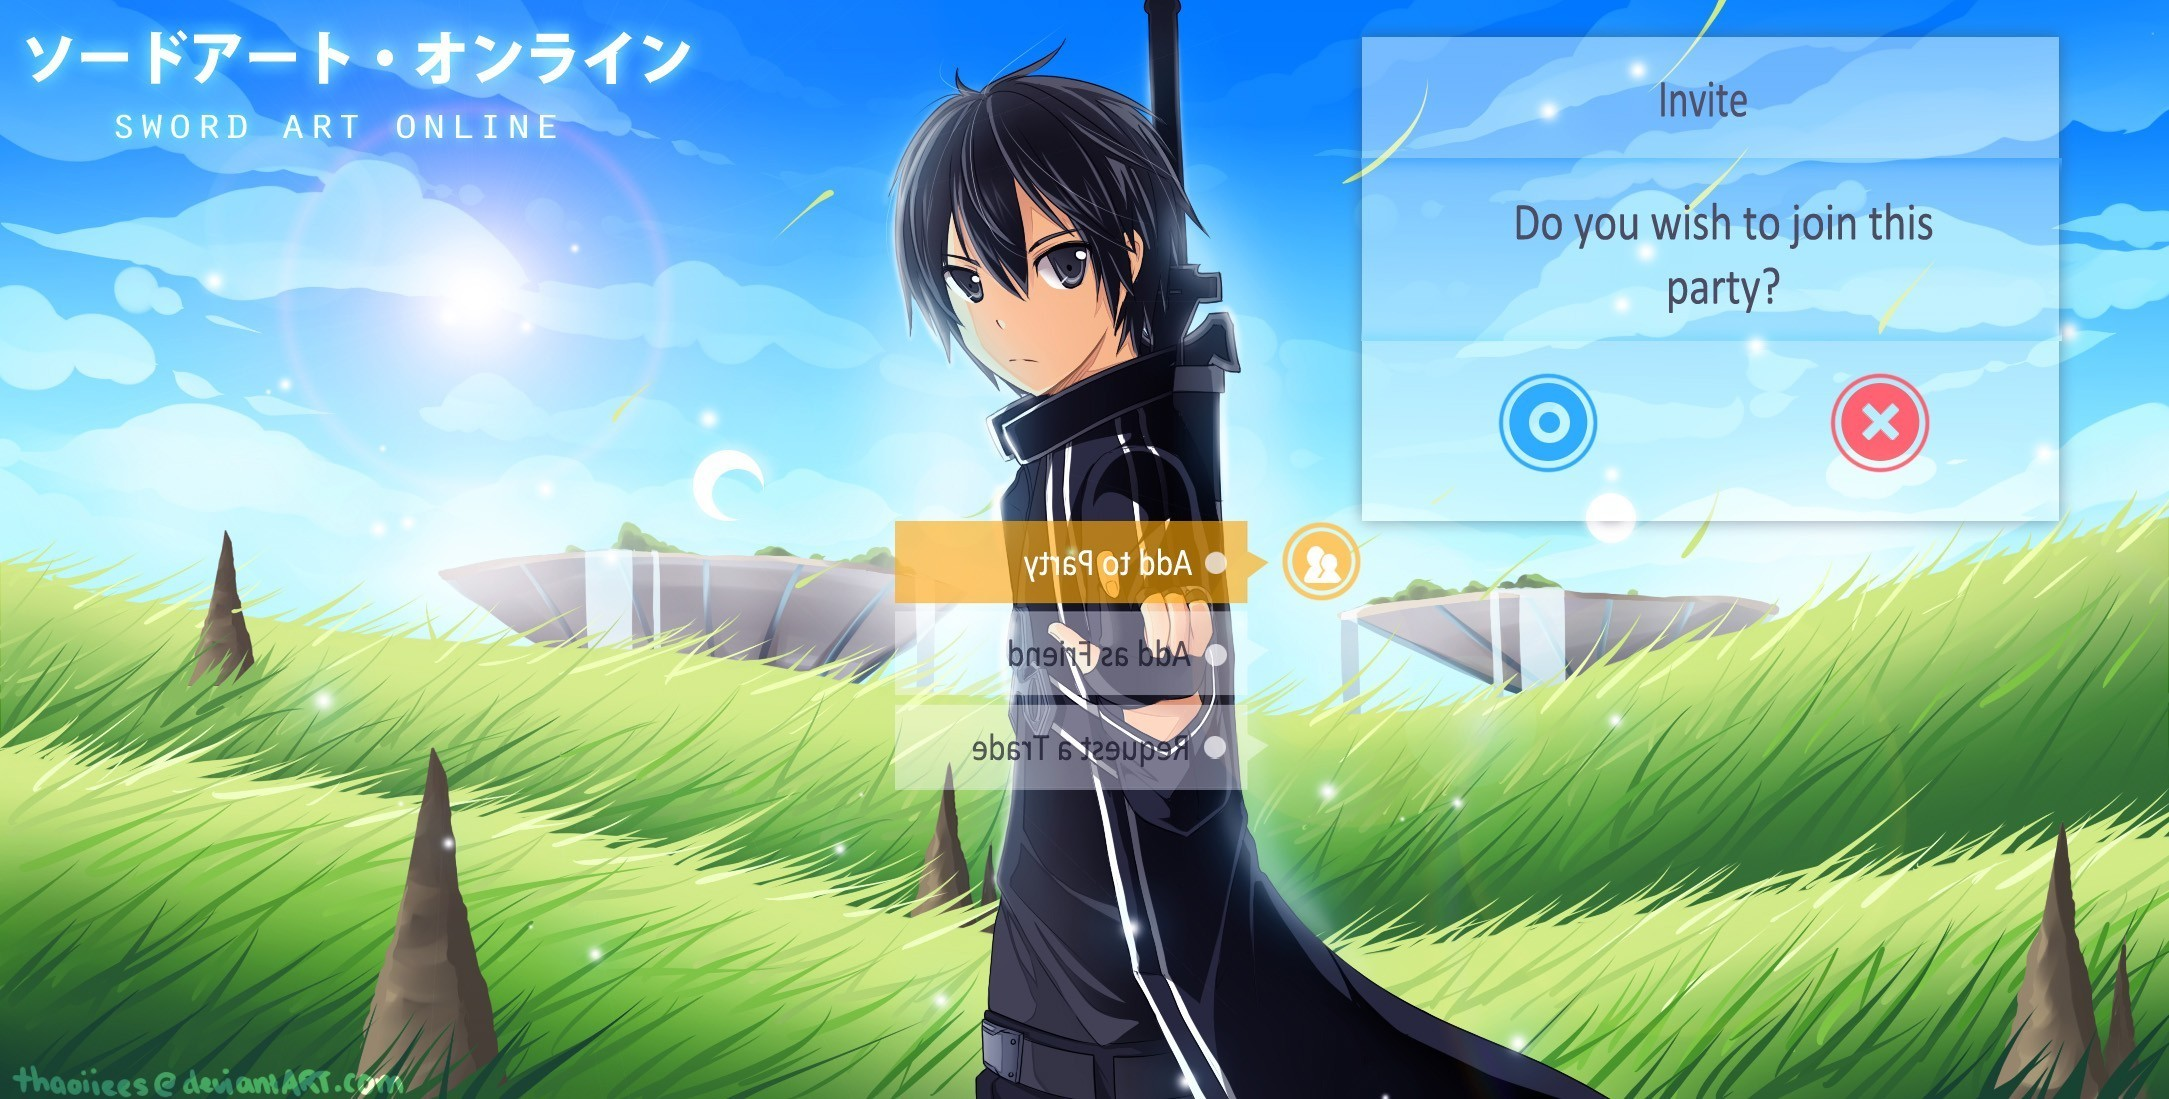 Sword Art Online Background: Sao Background ·① Download Free Amazing HD Backgrounds For